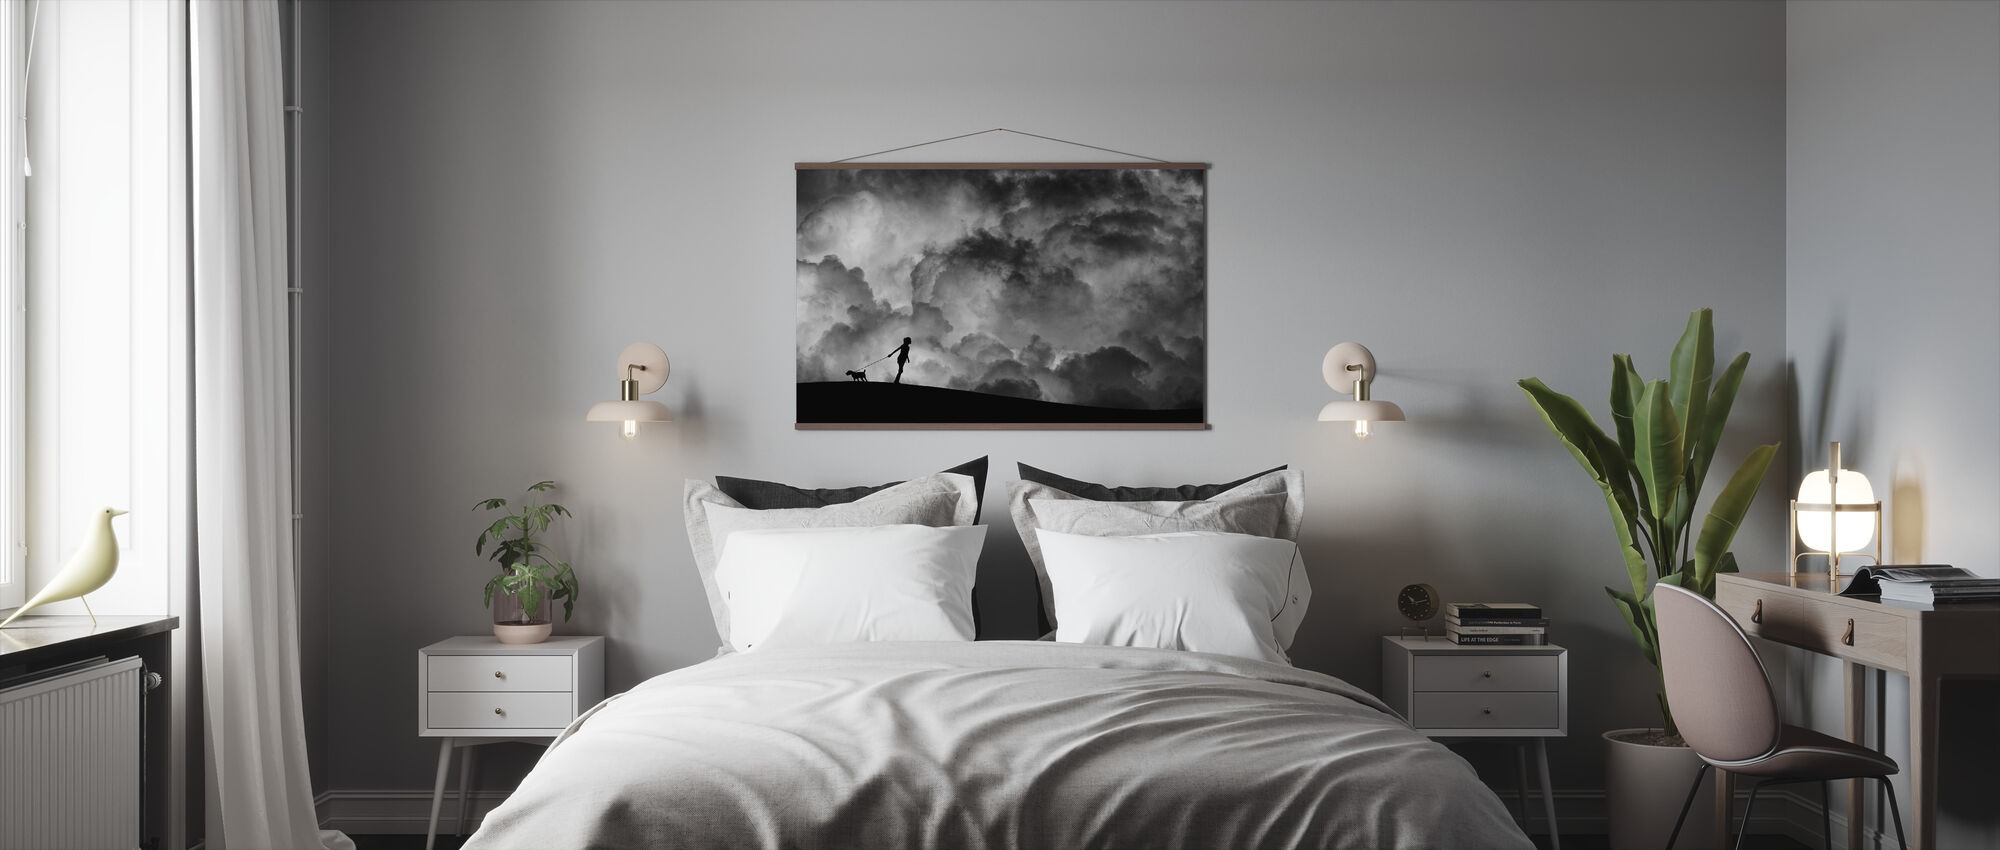 Prelude to the Dream, black and white - Poster - Bedroom